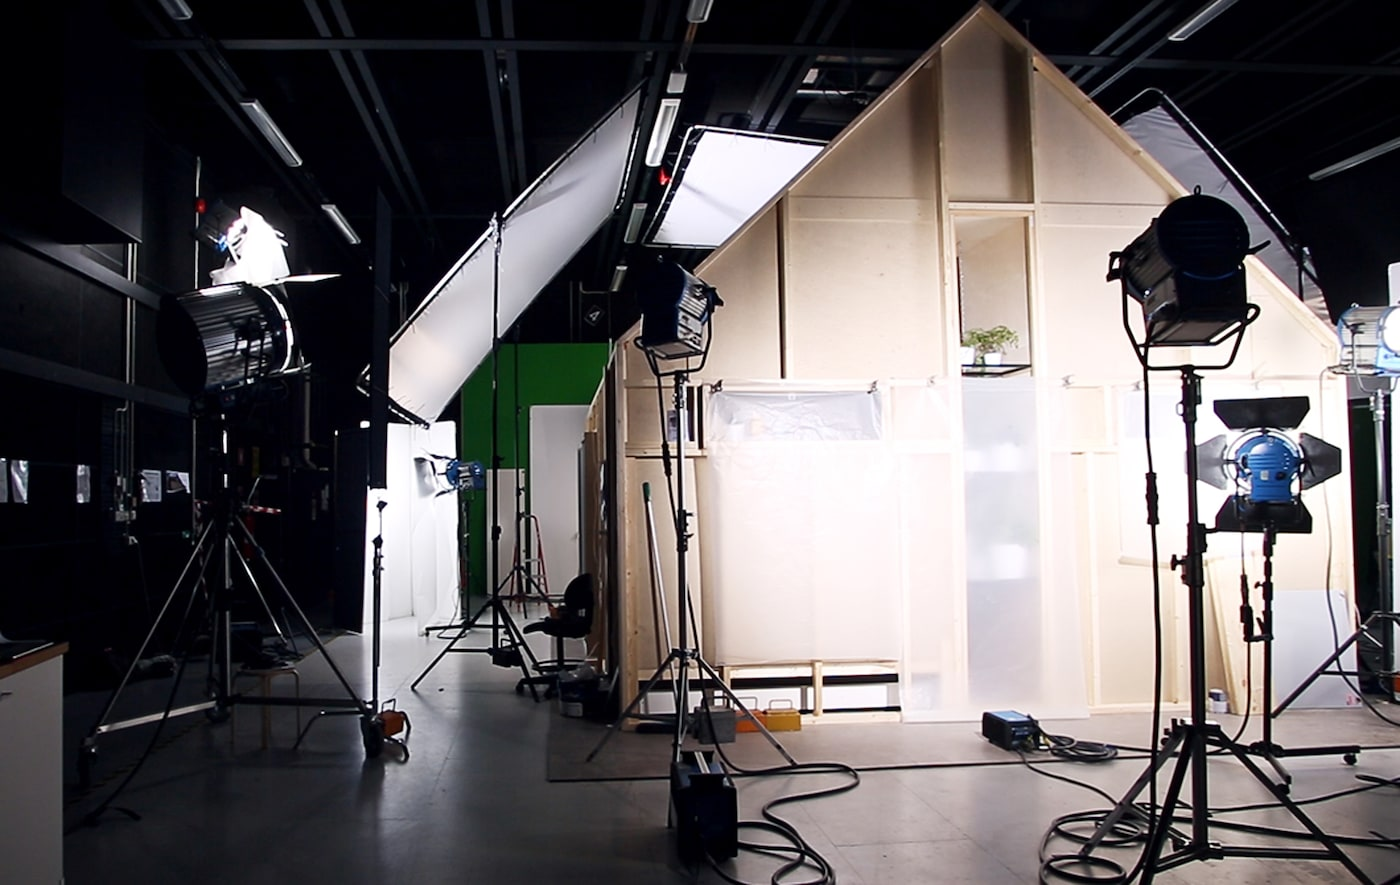 A 30 square metre family home built in the IKEA photo studio, set up and ready to film tips for small space living.